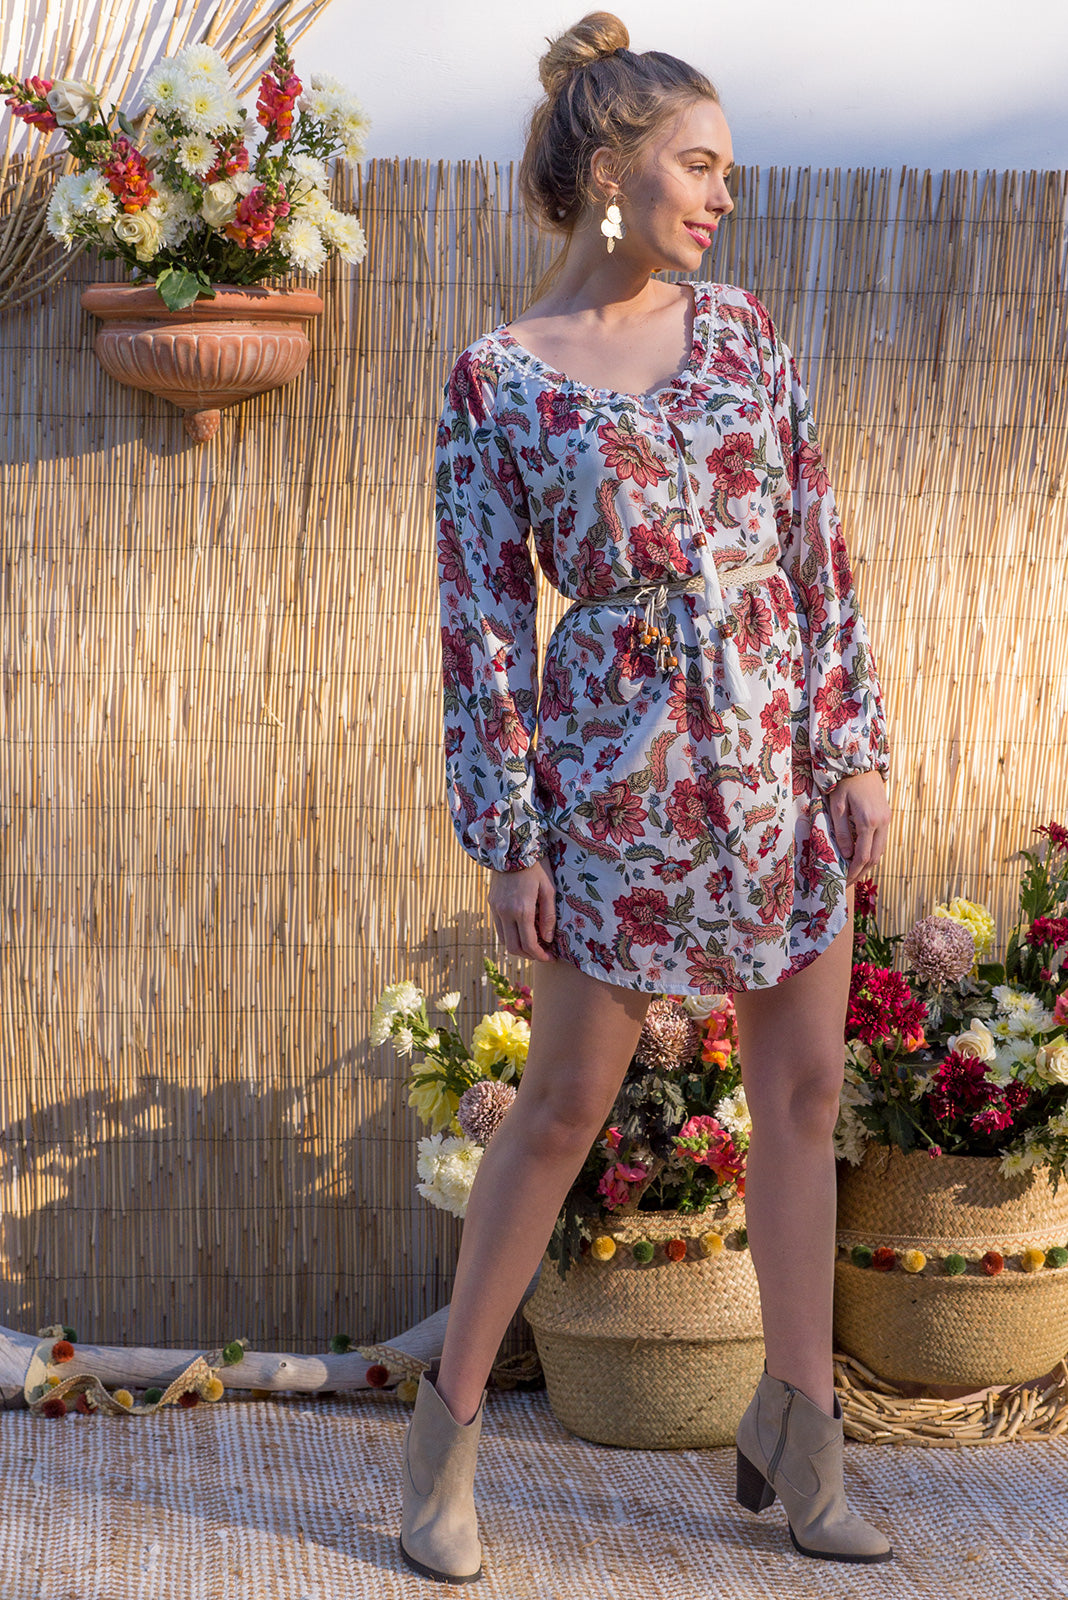 Amala Eastern Flower Dress features a wide adjustable neckline and a soft full length sleeve with elastic at the cuff and it comes in a boho inspired eastern flower print on soft woven rayon